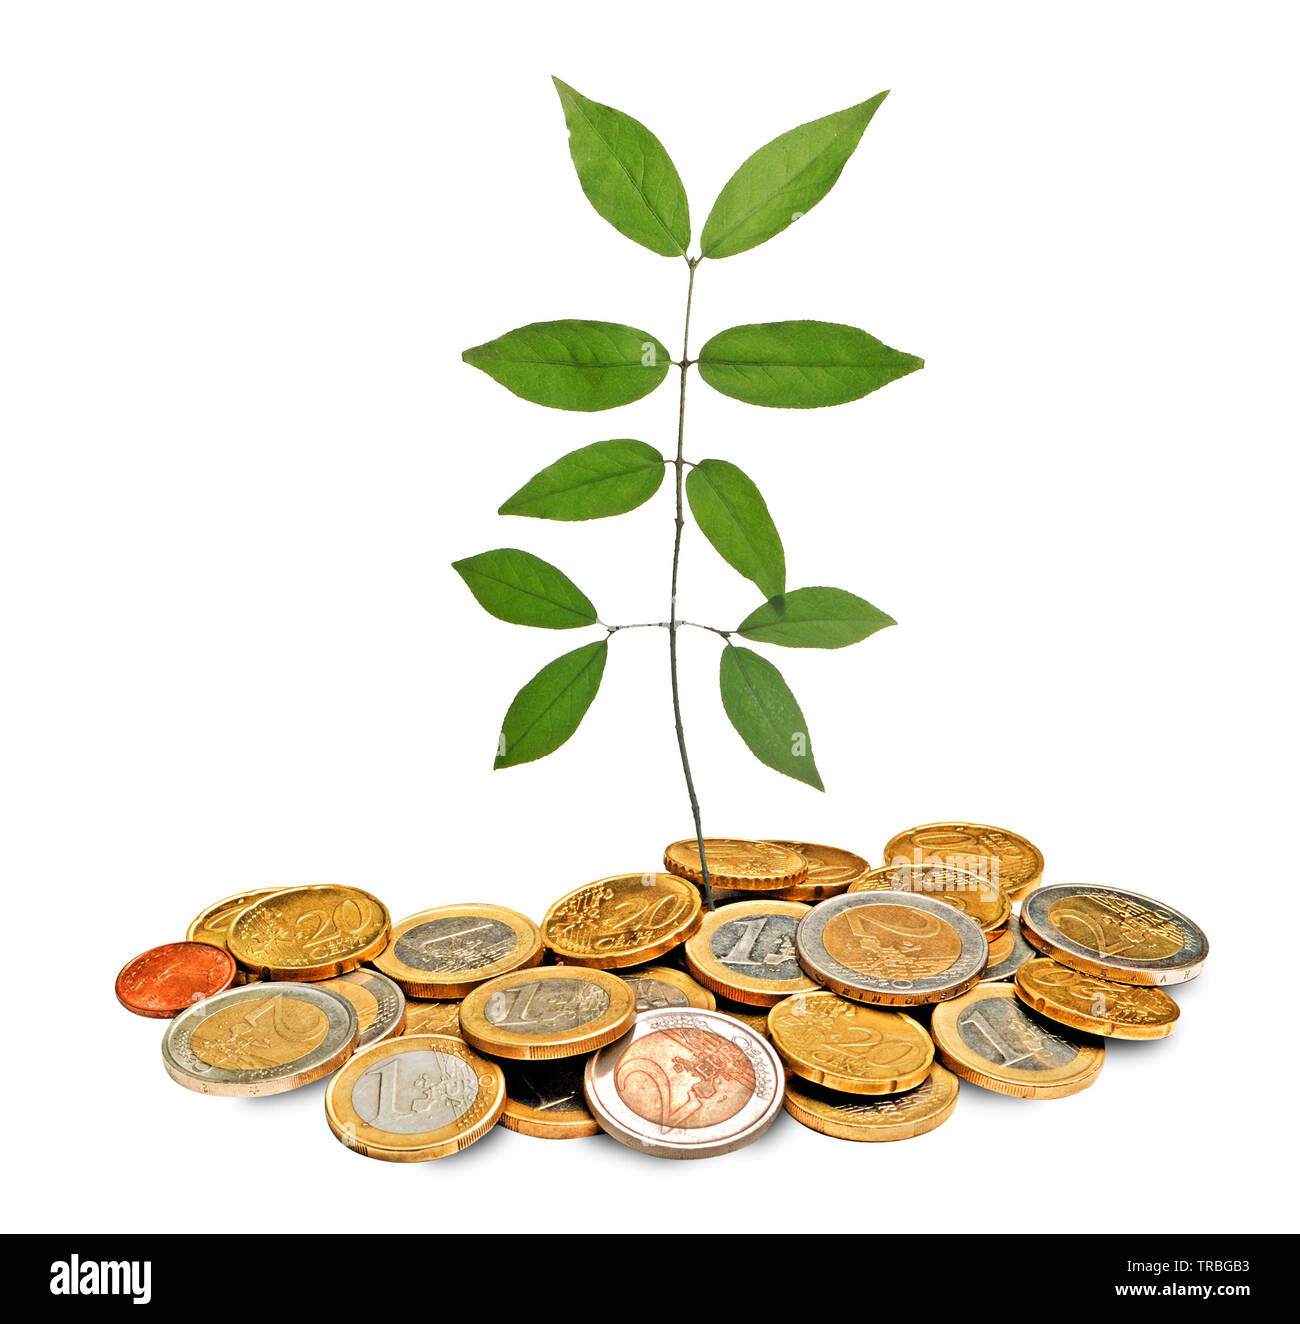 sapling growing from pile of coins - Stock Image